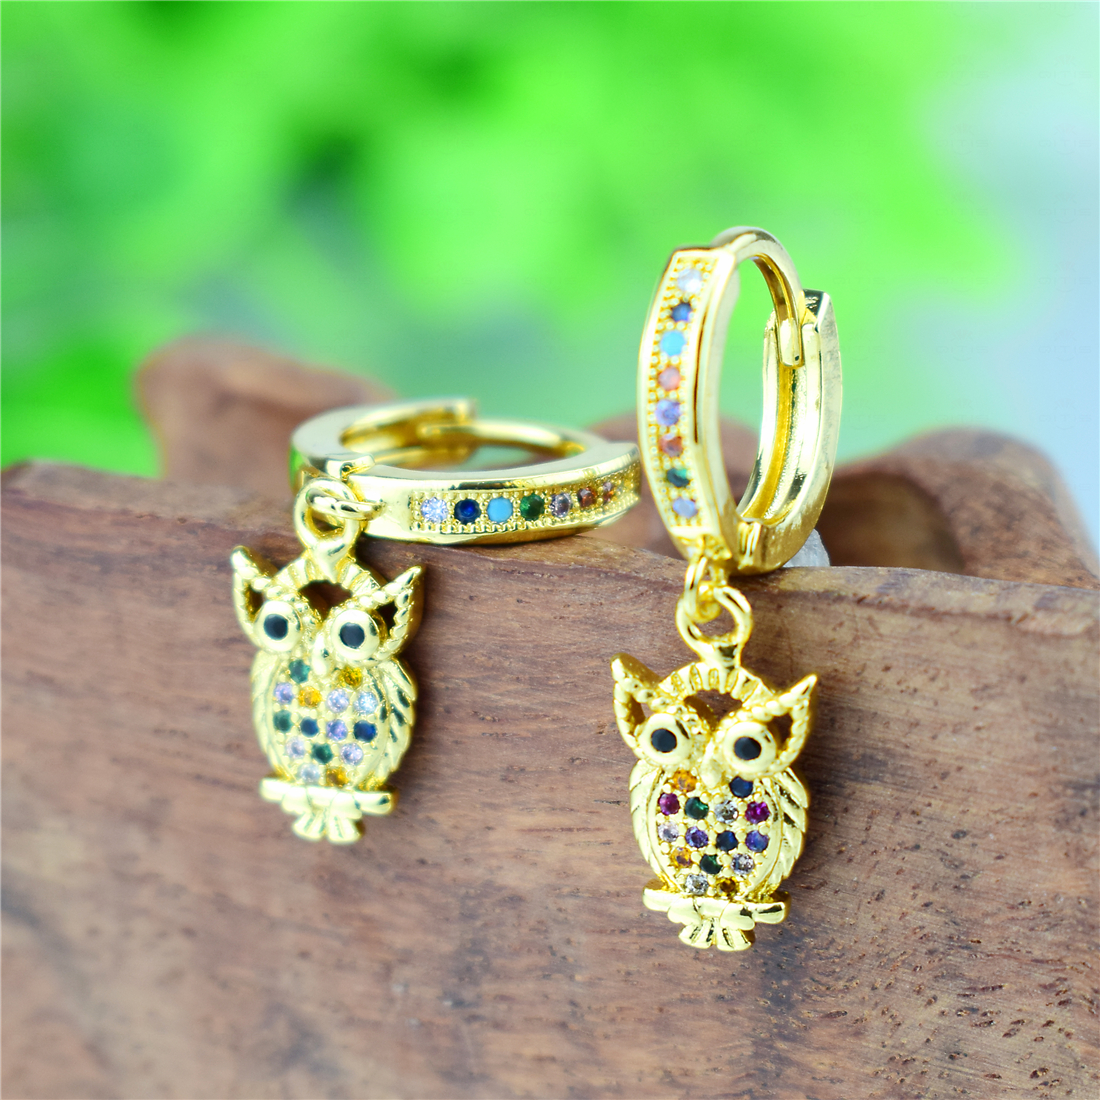 2020 Golden Exquisite Owl Zircon Earring for Women Rainbow AAA Zircon Crystal Drop Earring Daily Pendant Birthday Gift Present